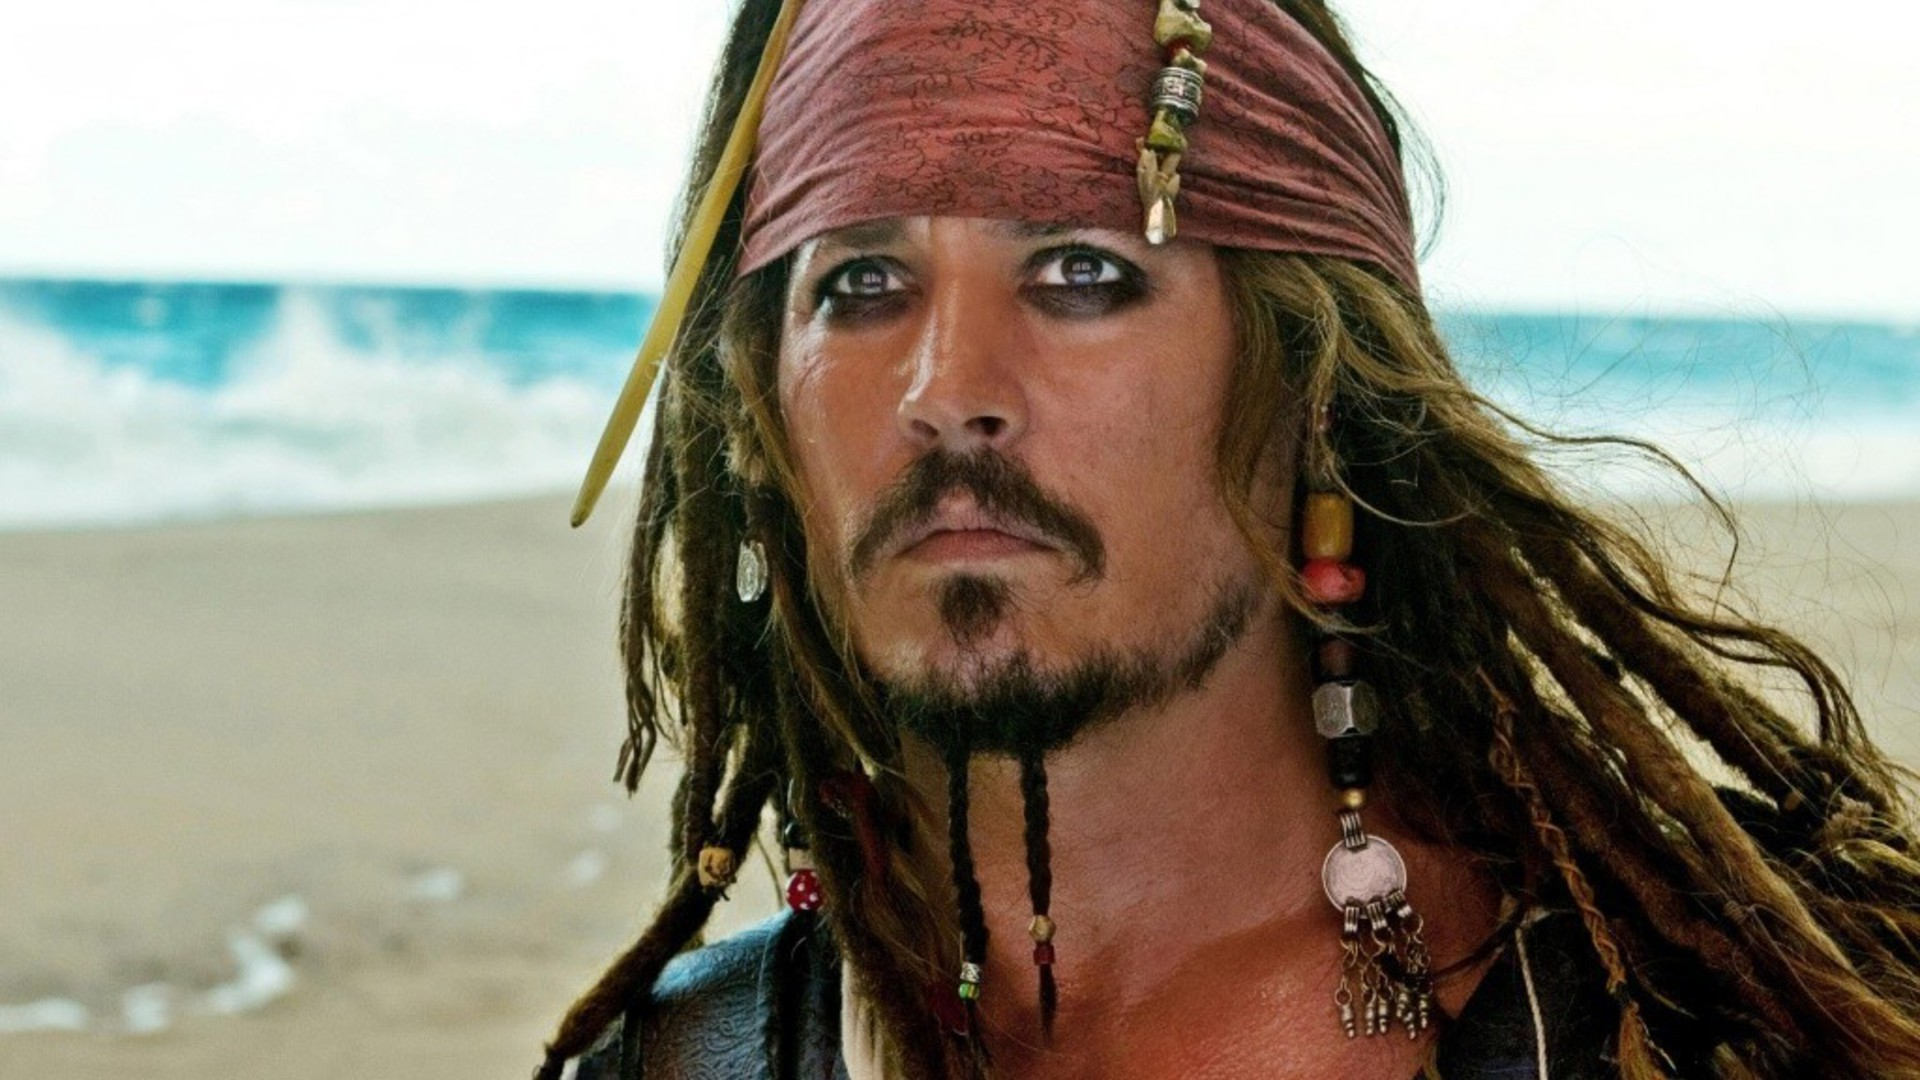 Pirates of the caribbean captain jack sparrow wallpaper wallpaper resolutions altavistaventures Image collections